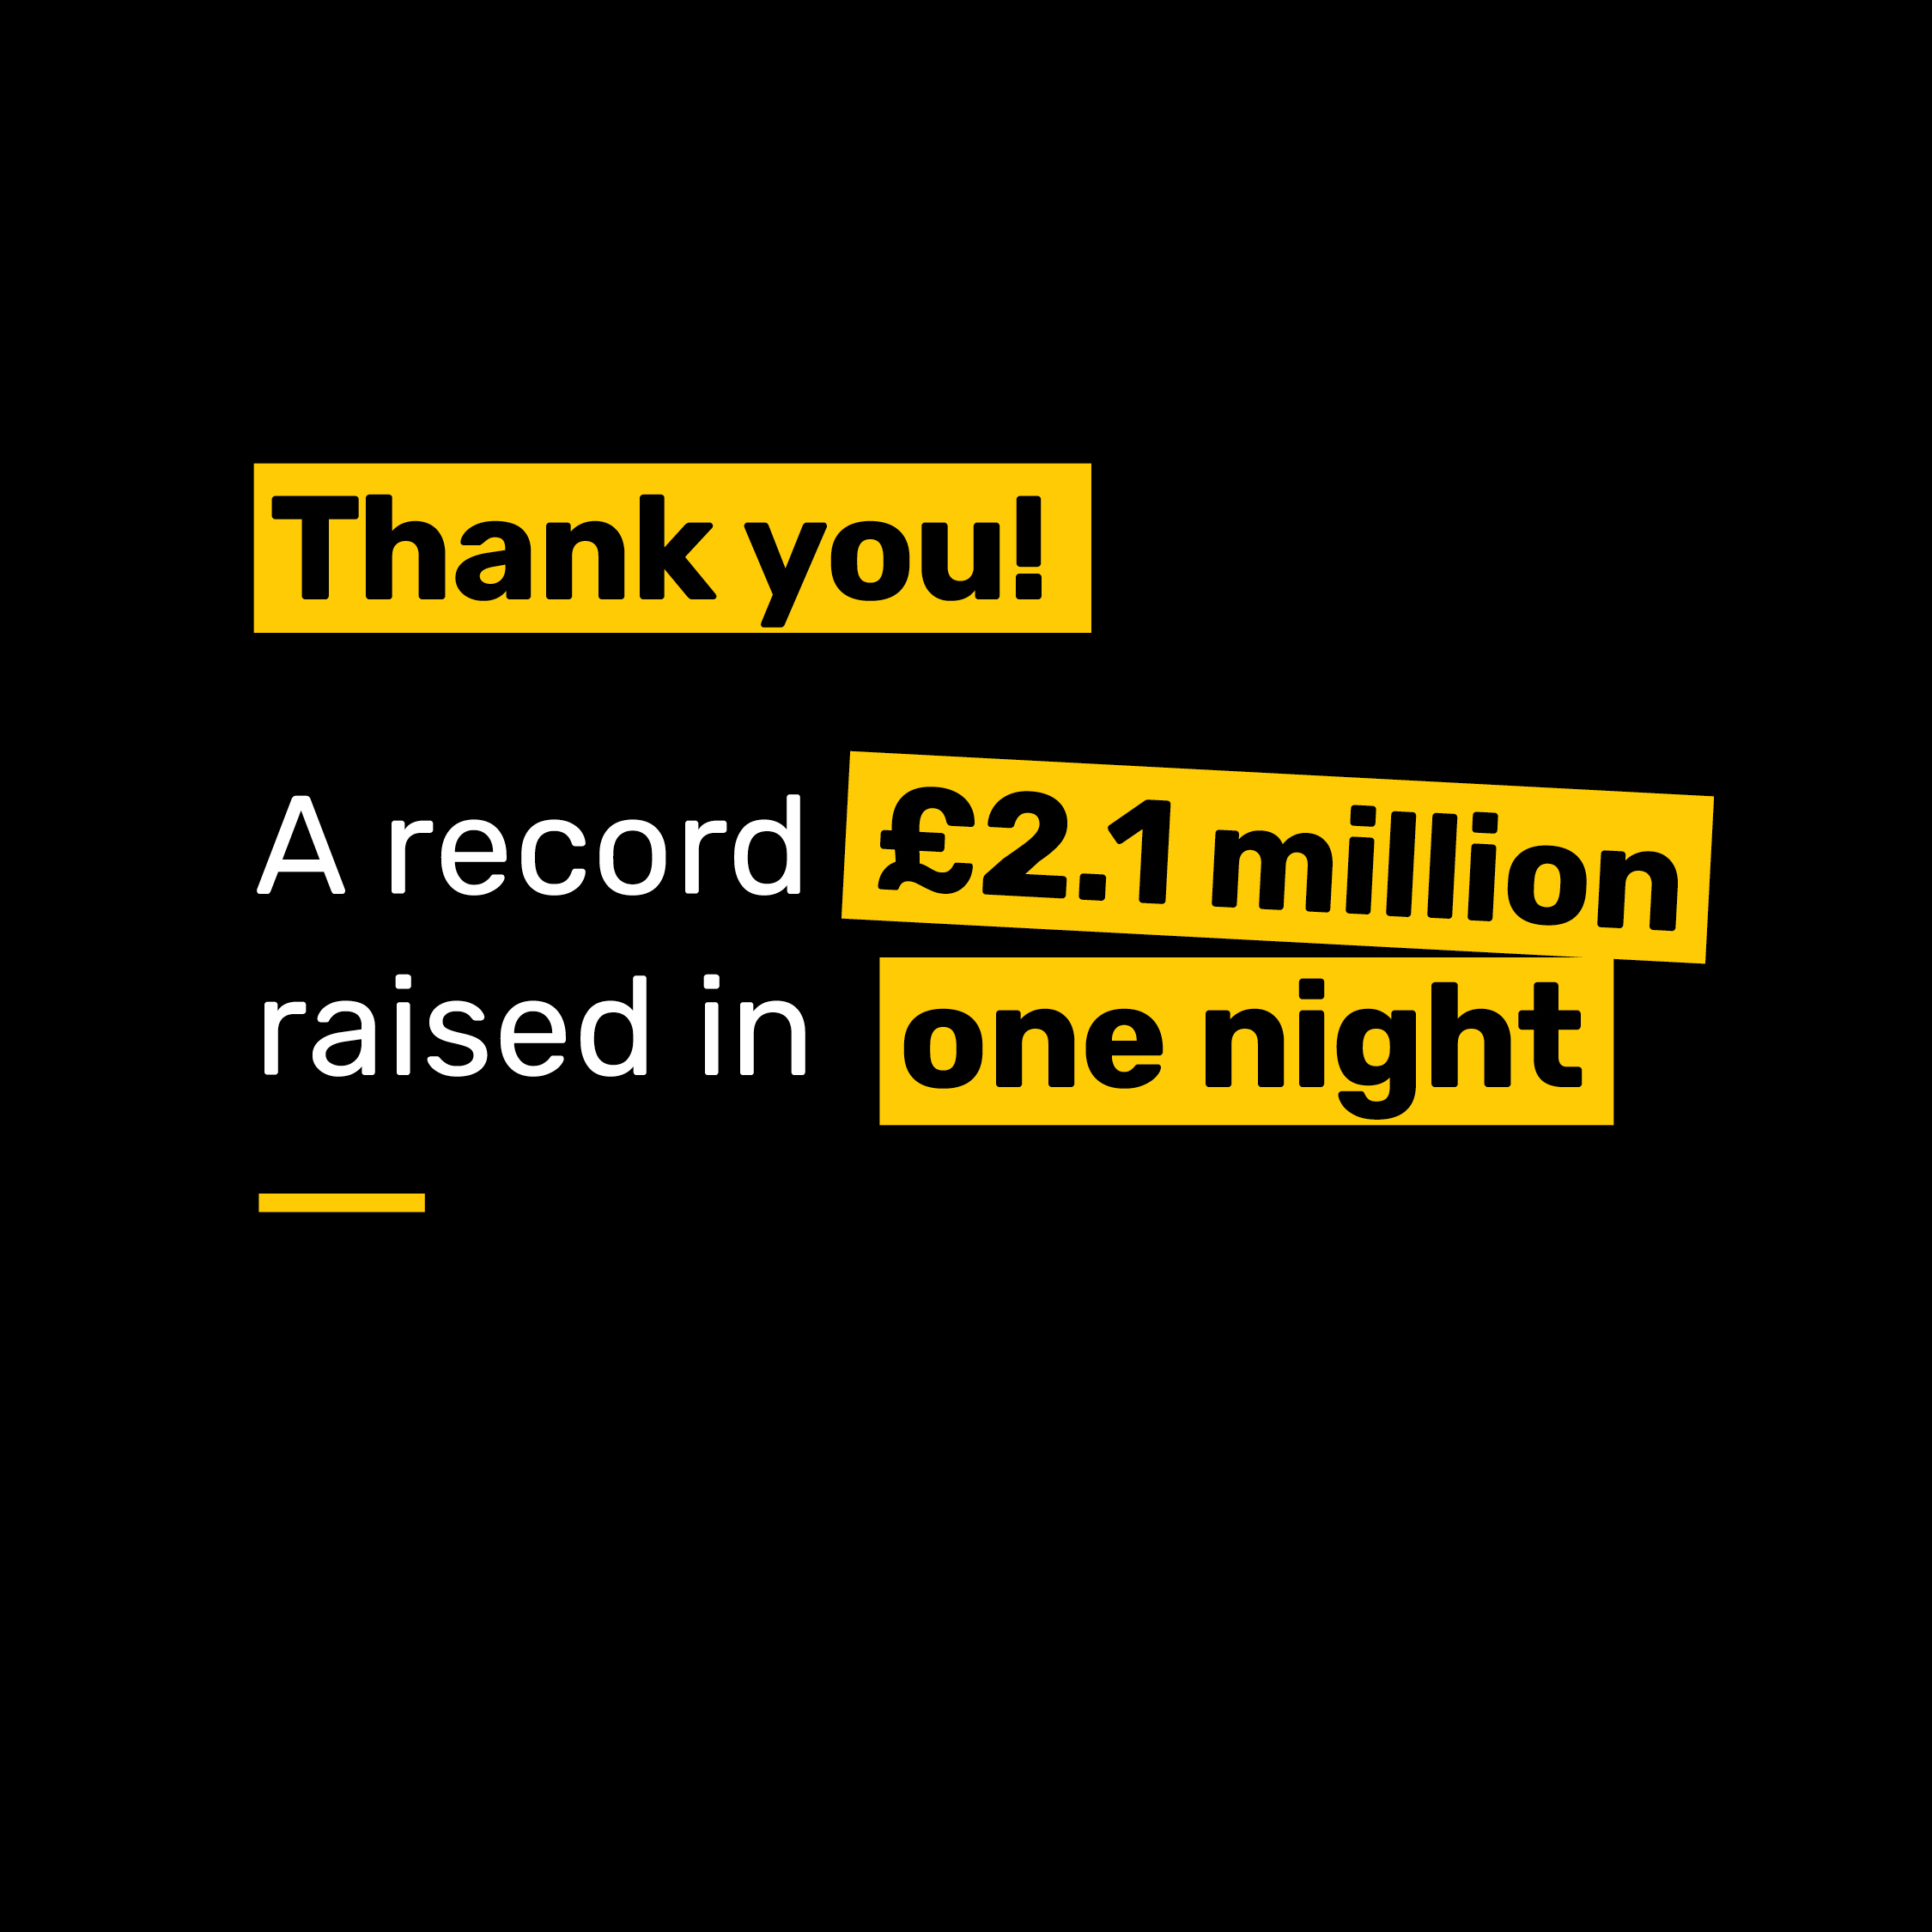 Record-breaking charity appeal raises £2.1 million in one night